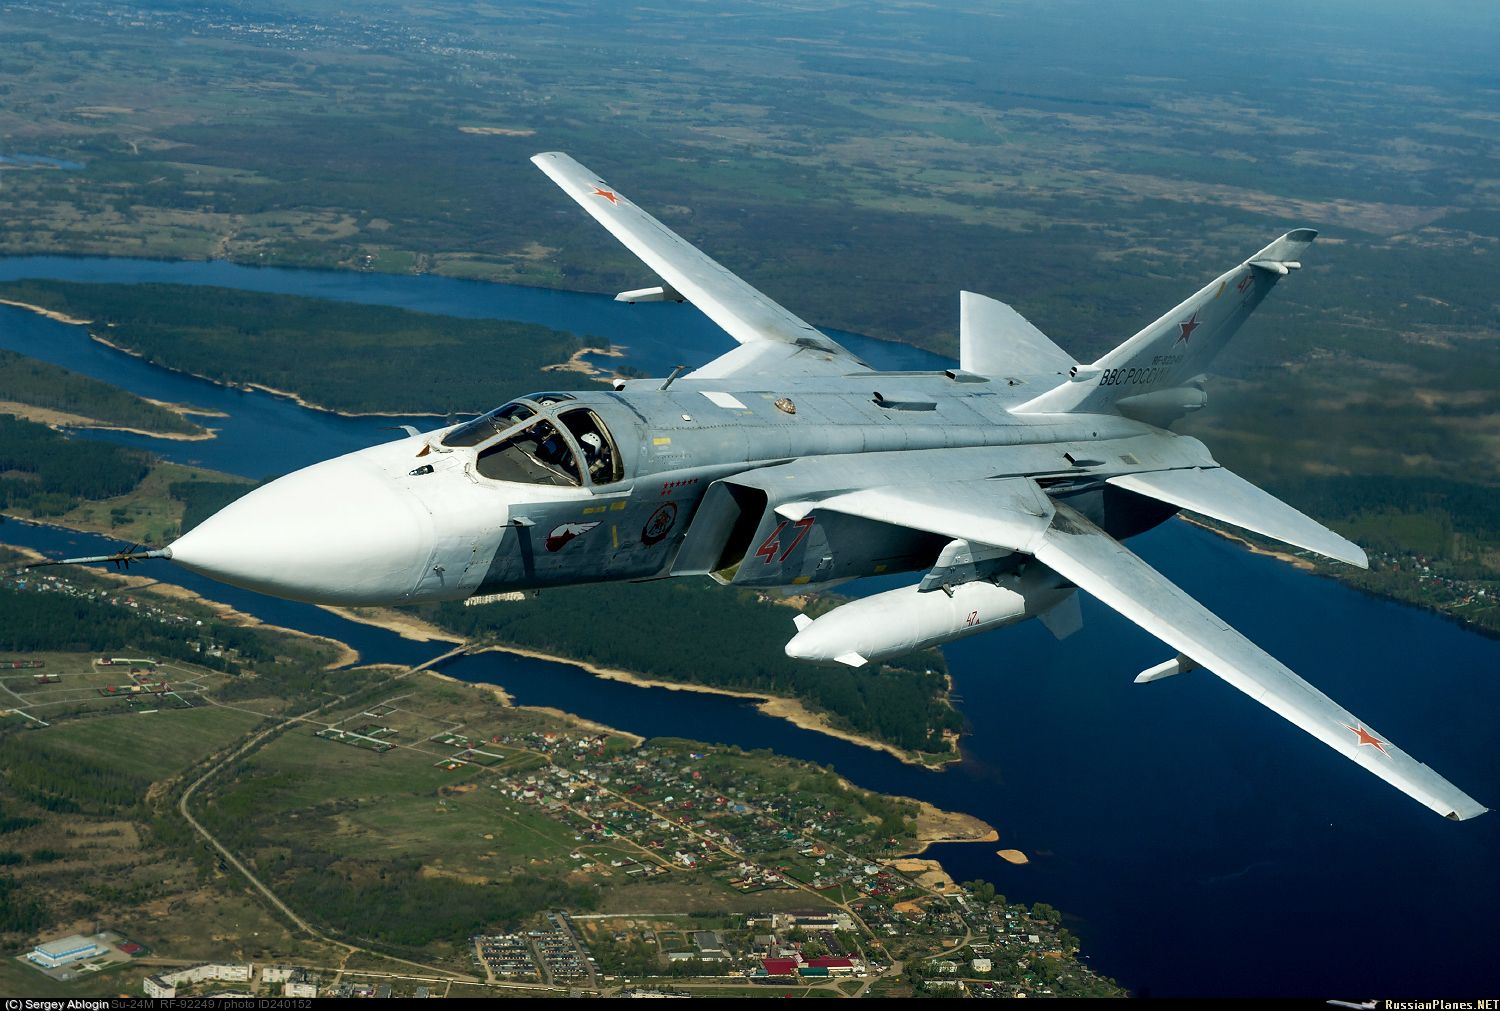 Pin by pavel on jets | Sukhoi, Fighter aircraft, Air force